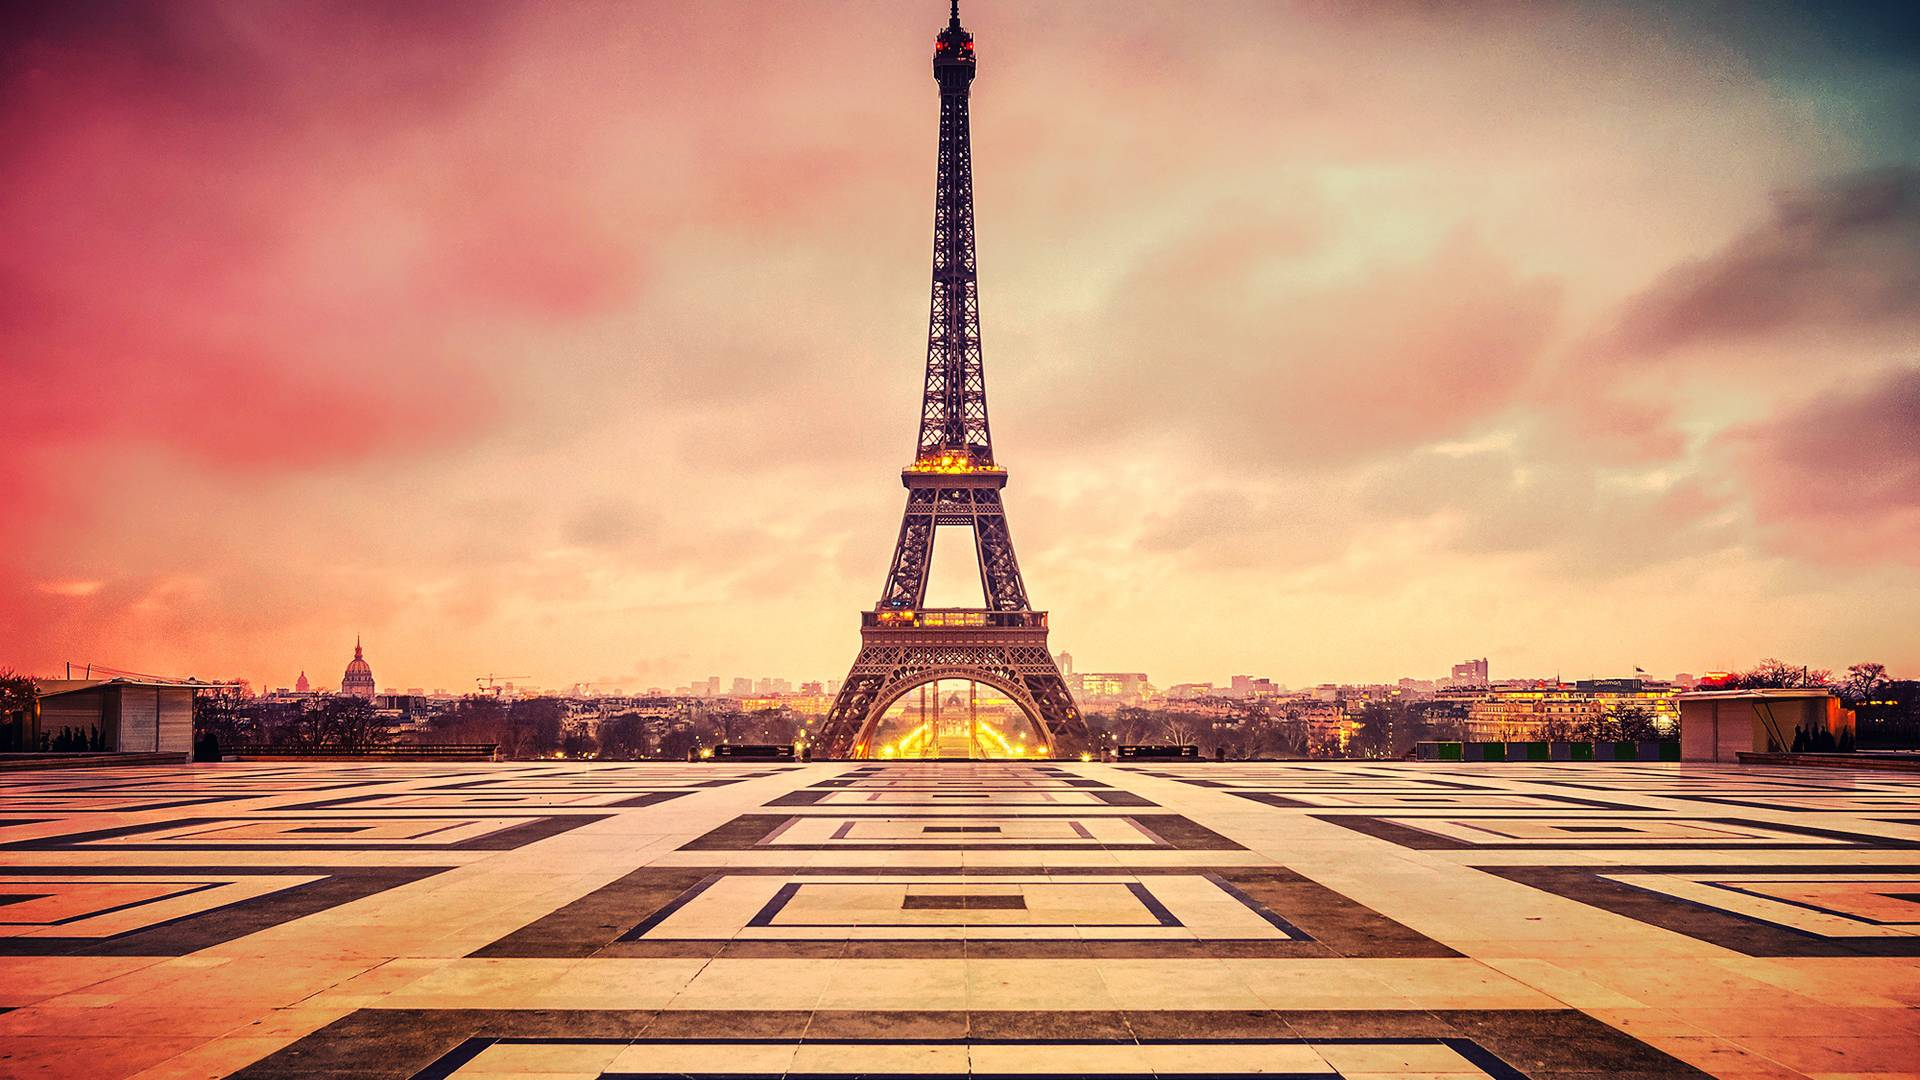 paris desktops, paris hd pictures